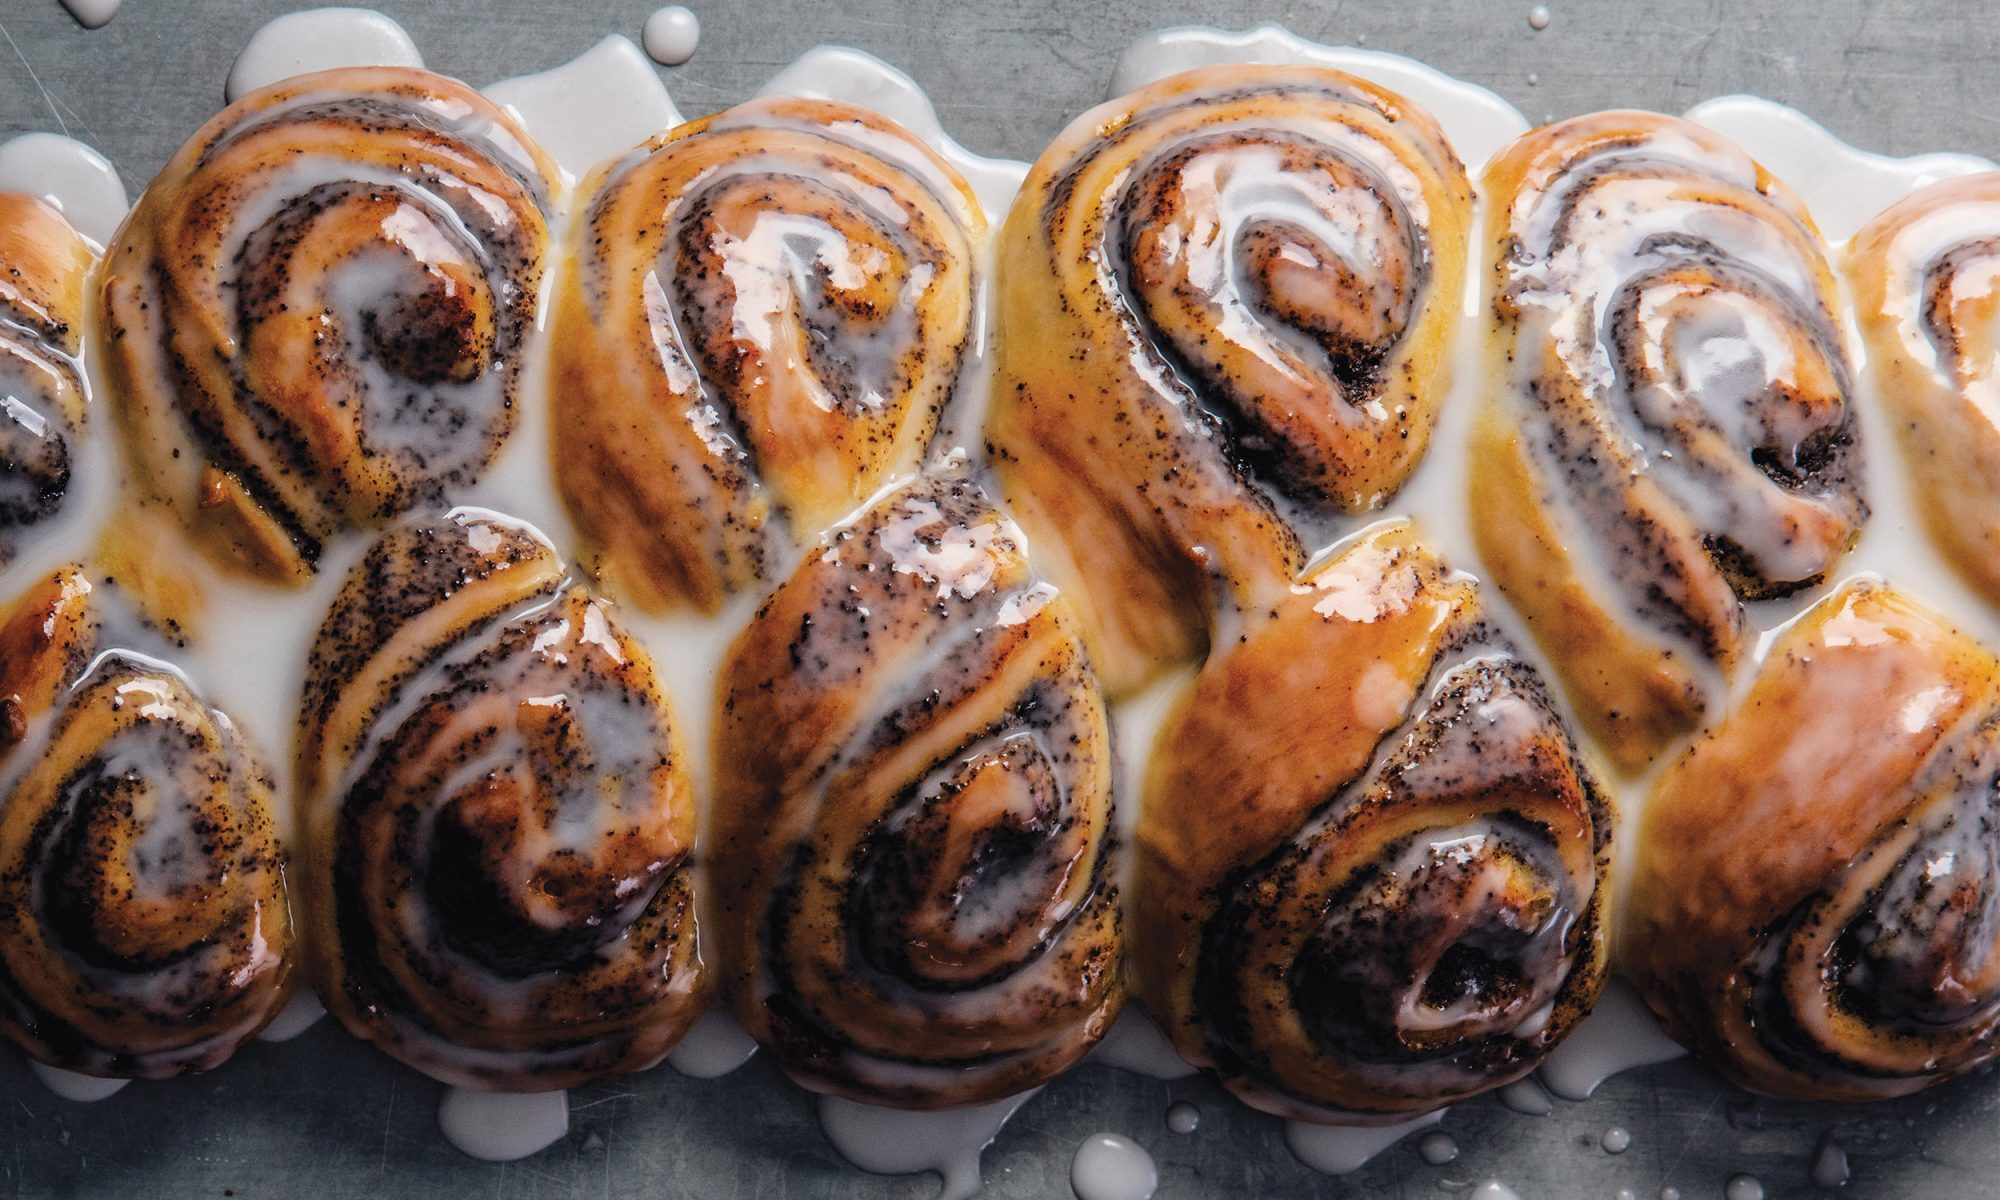 This Braided Poppy-Seed Roll Is a Delightful German Breakfast